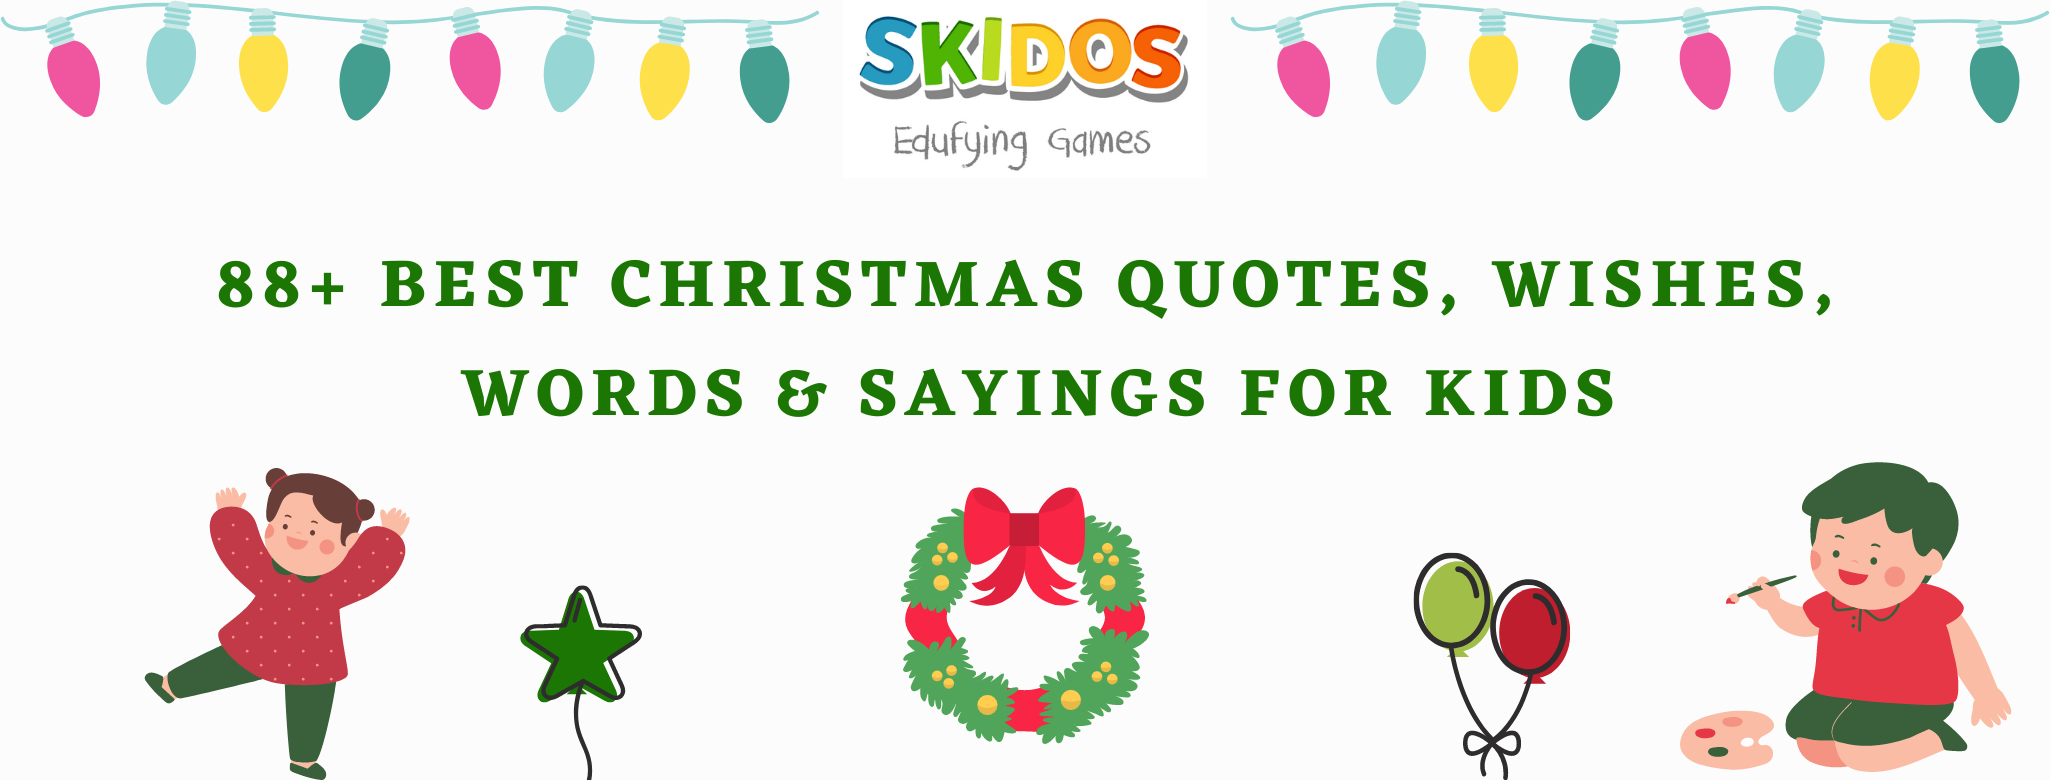 Best Christmas Quotes, Wishes, Words & Sayings For Kids